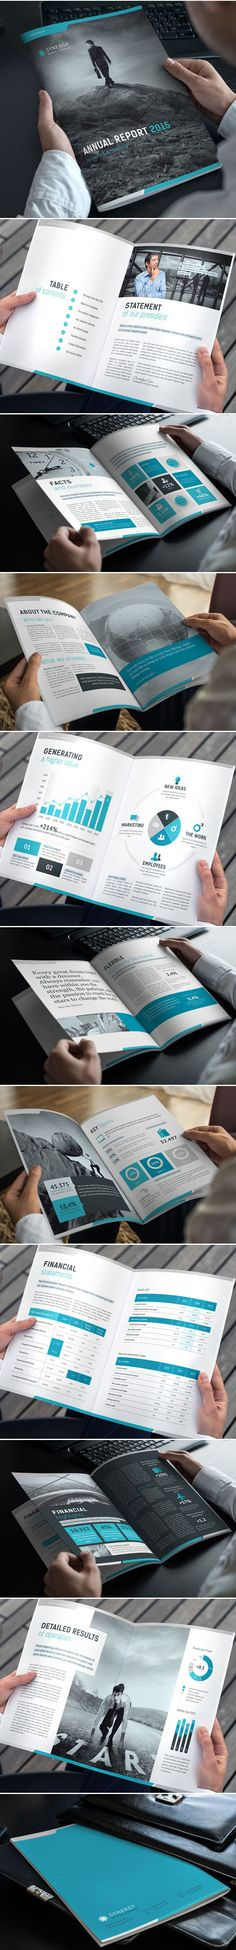 Annual Report 2015 Template on Behance